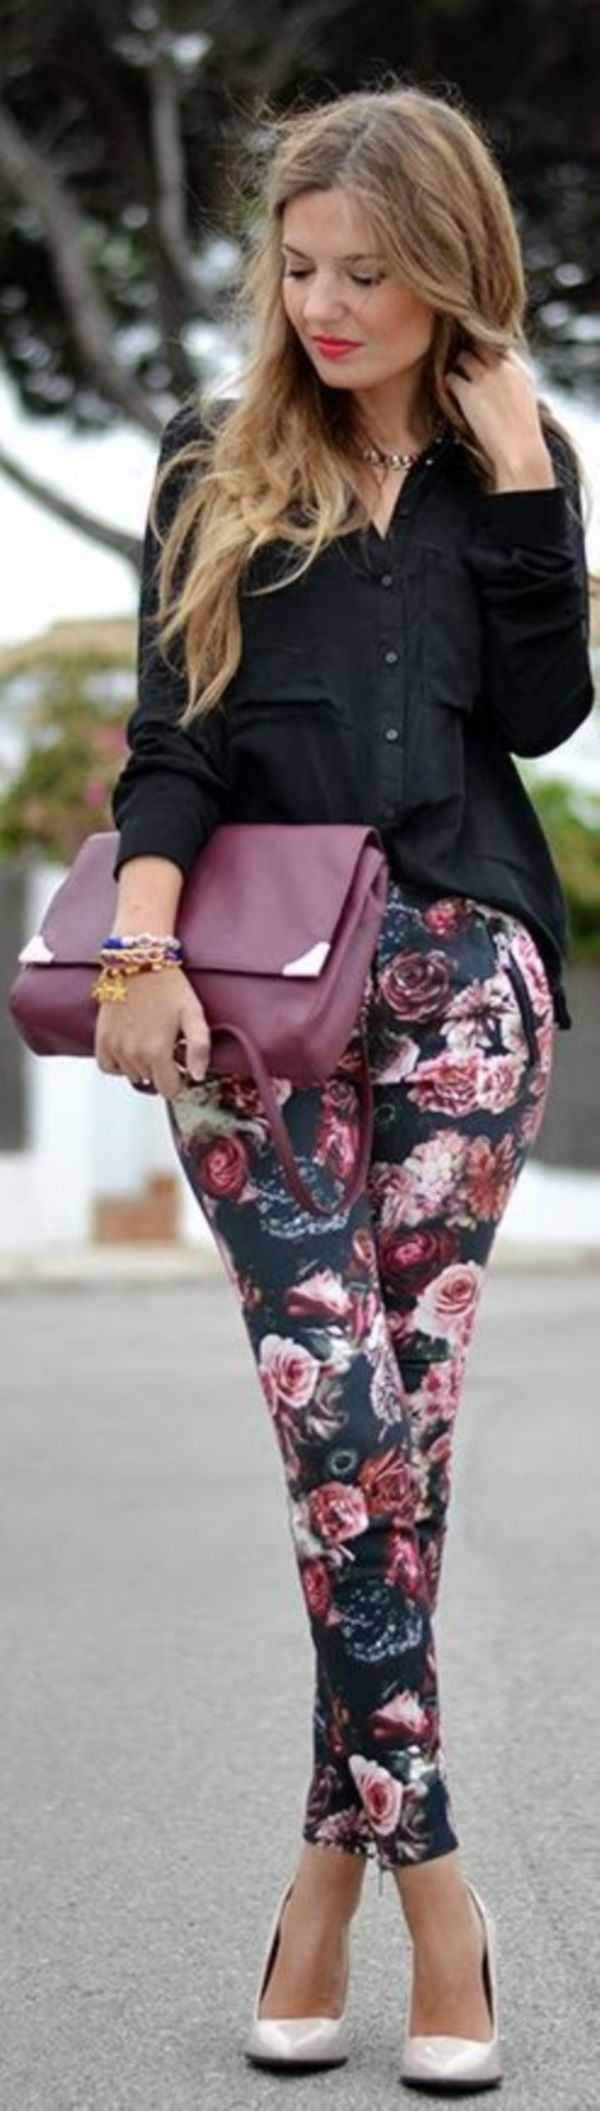 40 Trendy Outfit Ideas With Floral Pants | http://stylishwife.com/2015/04/trendy-outfit-ideas-with-floral-pants.html